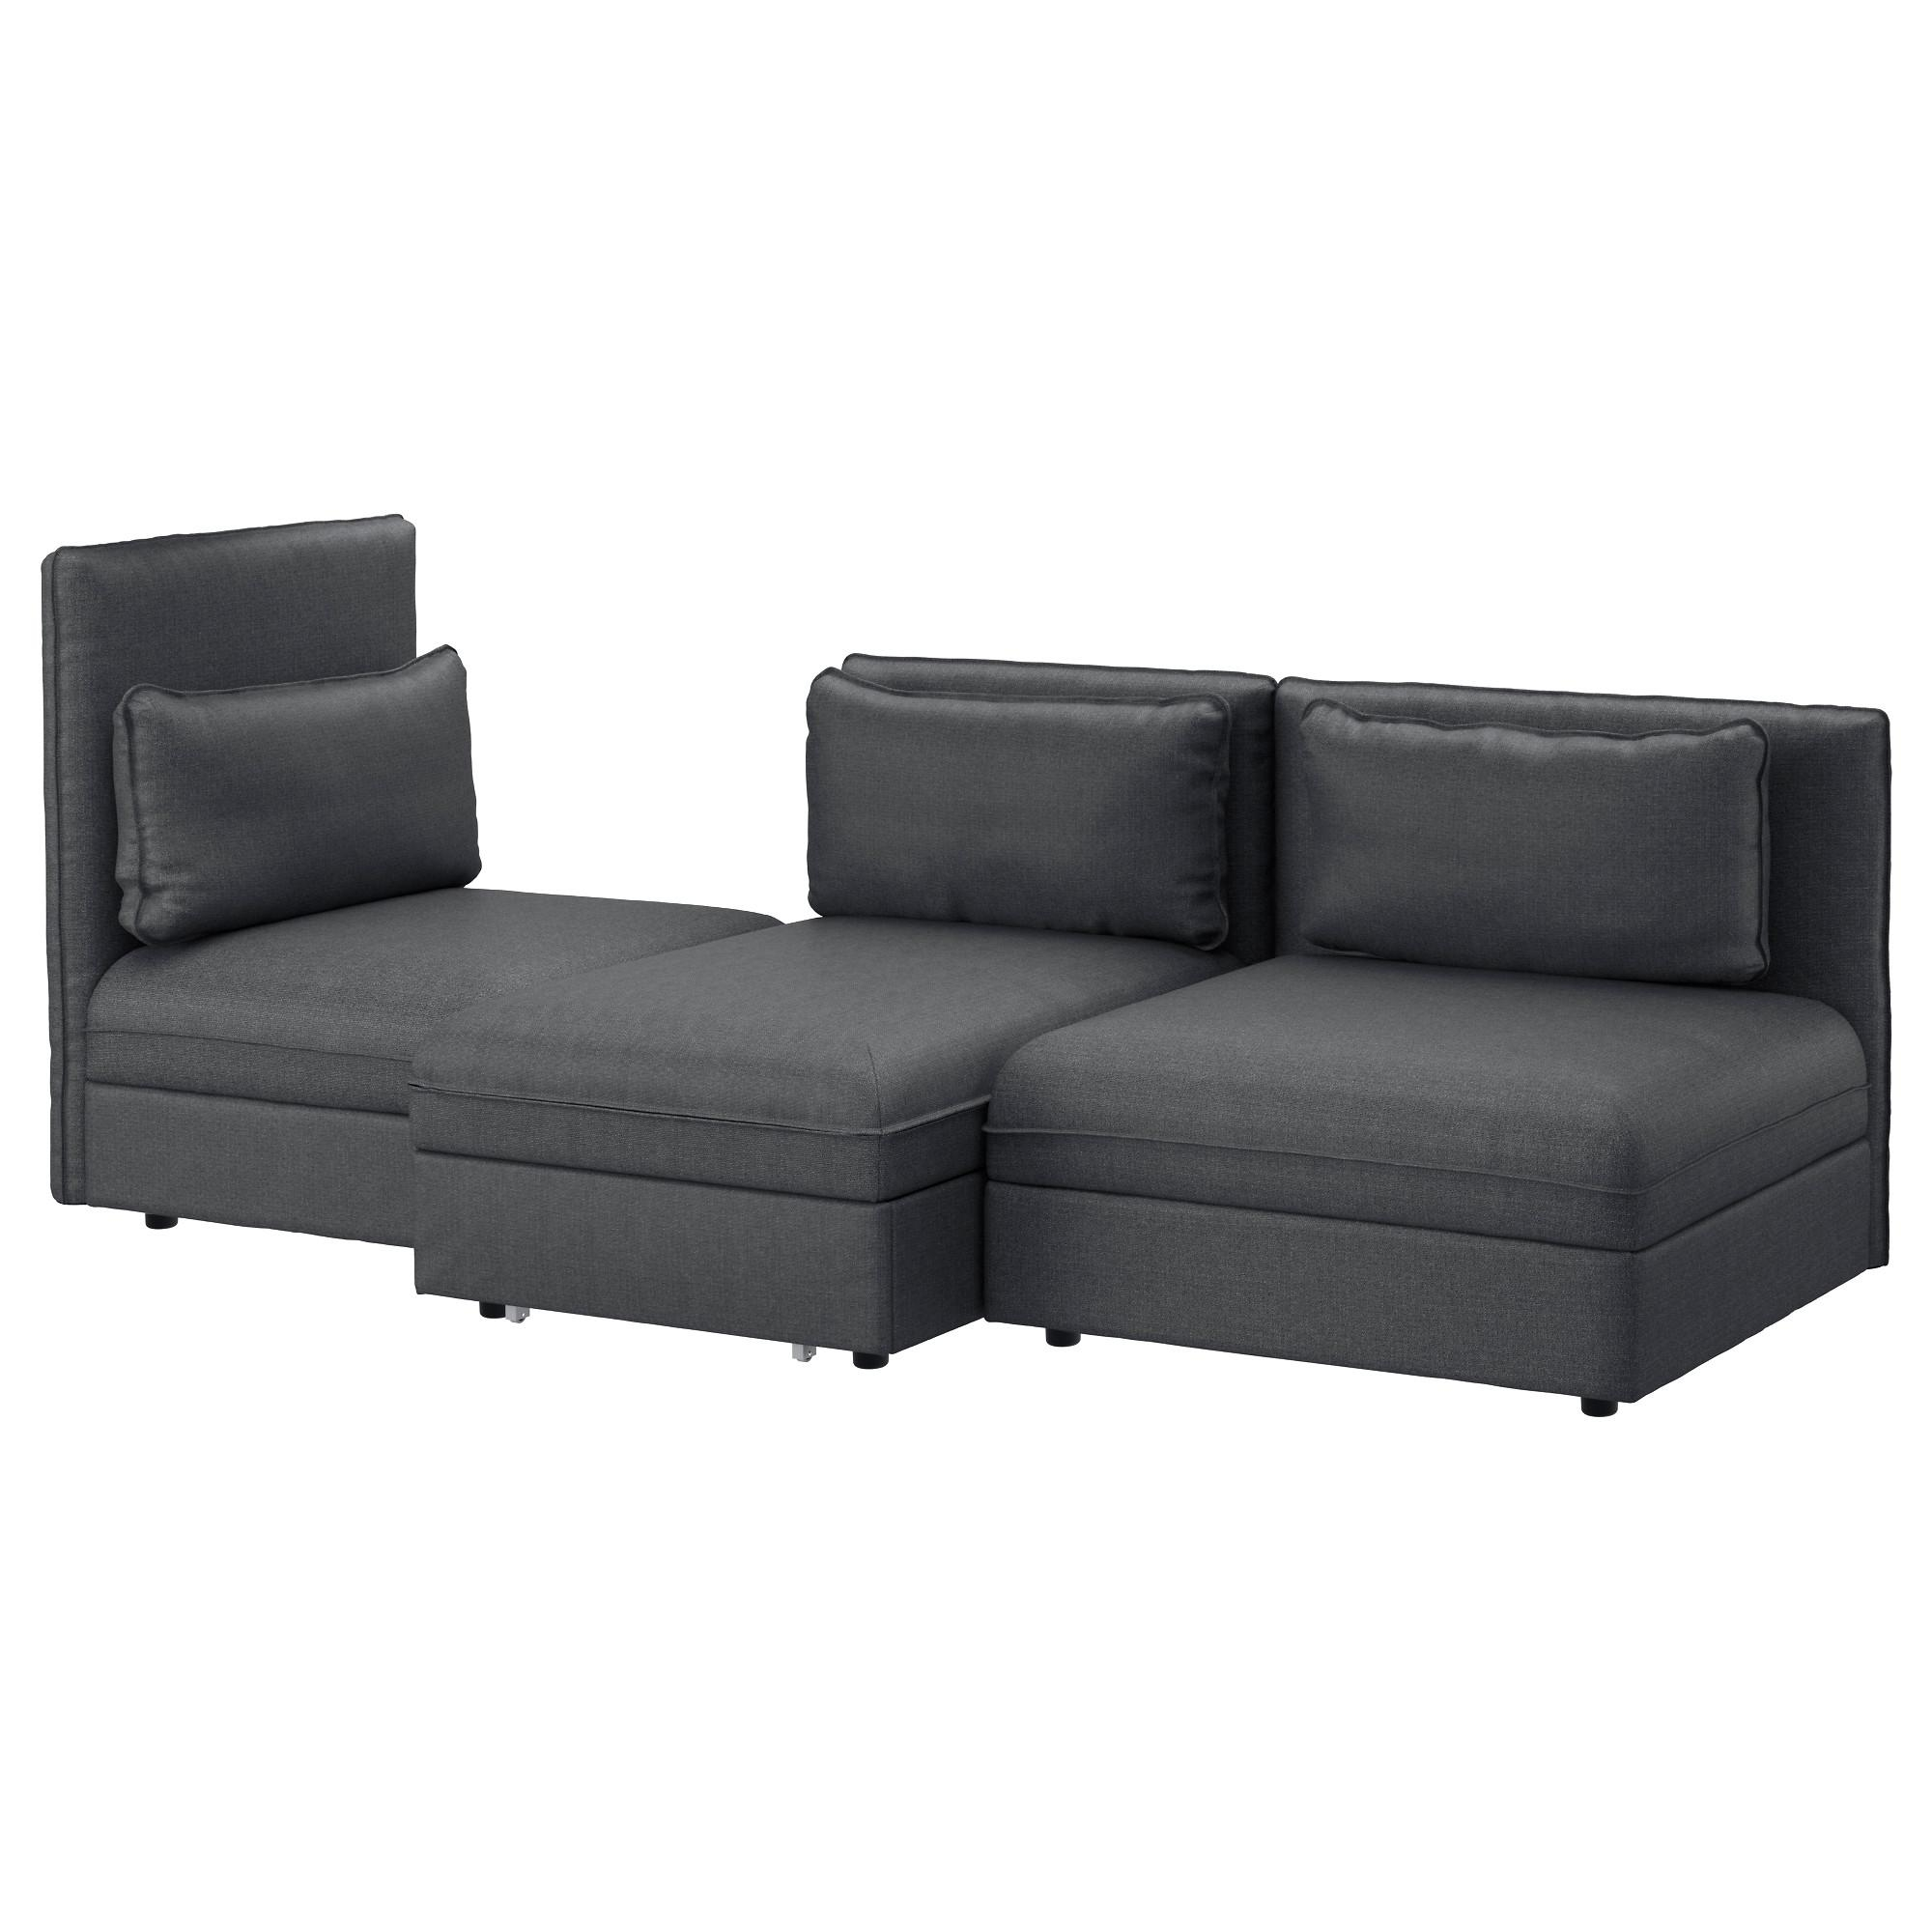 Vallentuna 3 Seat Sofa With Bed Hillared Dark Grey – Ikea Inside Sofas With Beds (View 13 of 22)